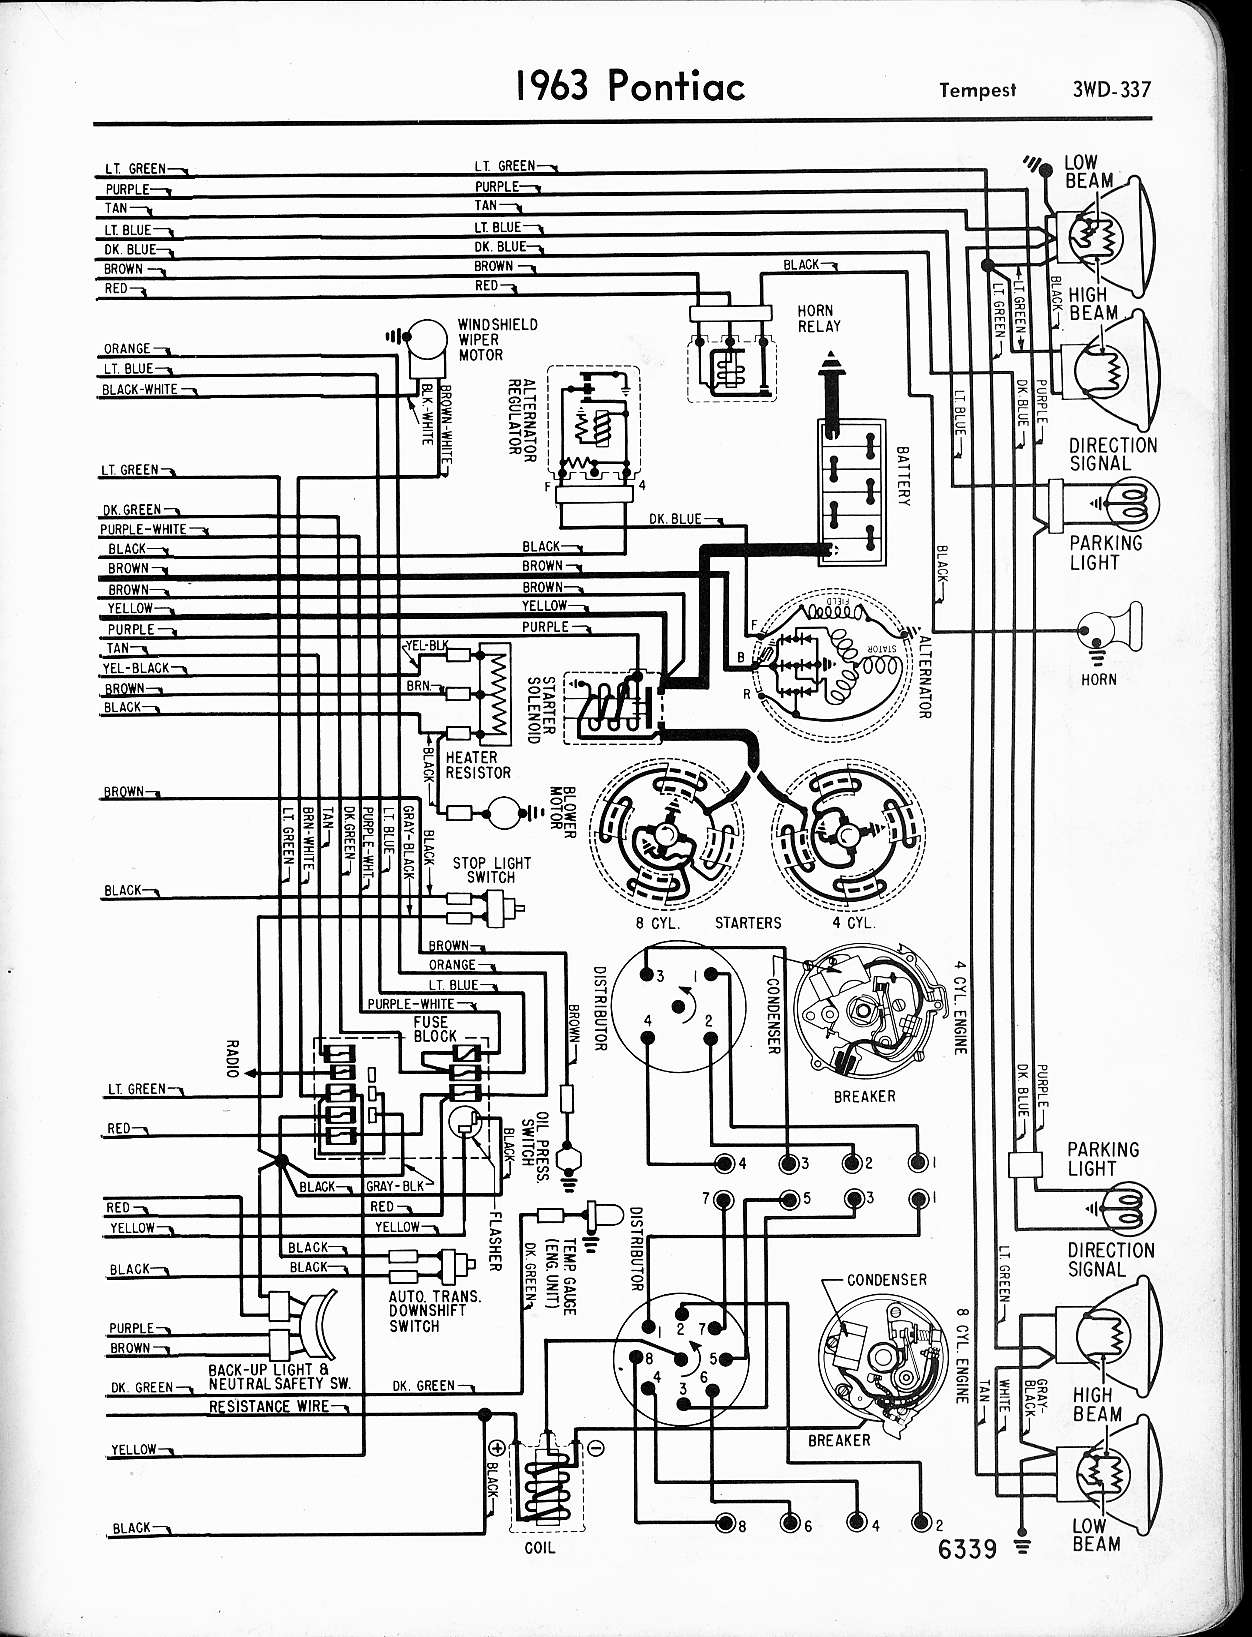 1967 gto horn wiring diagram schematic diagram Ford Tractor Solenoid Wiring Diagram 70 mustang horn wiring diagram best wiring library 1969 grand prix wiring diagram 1963 tempest wiring